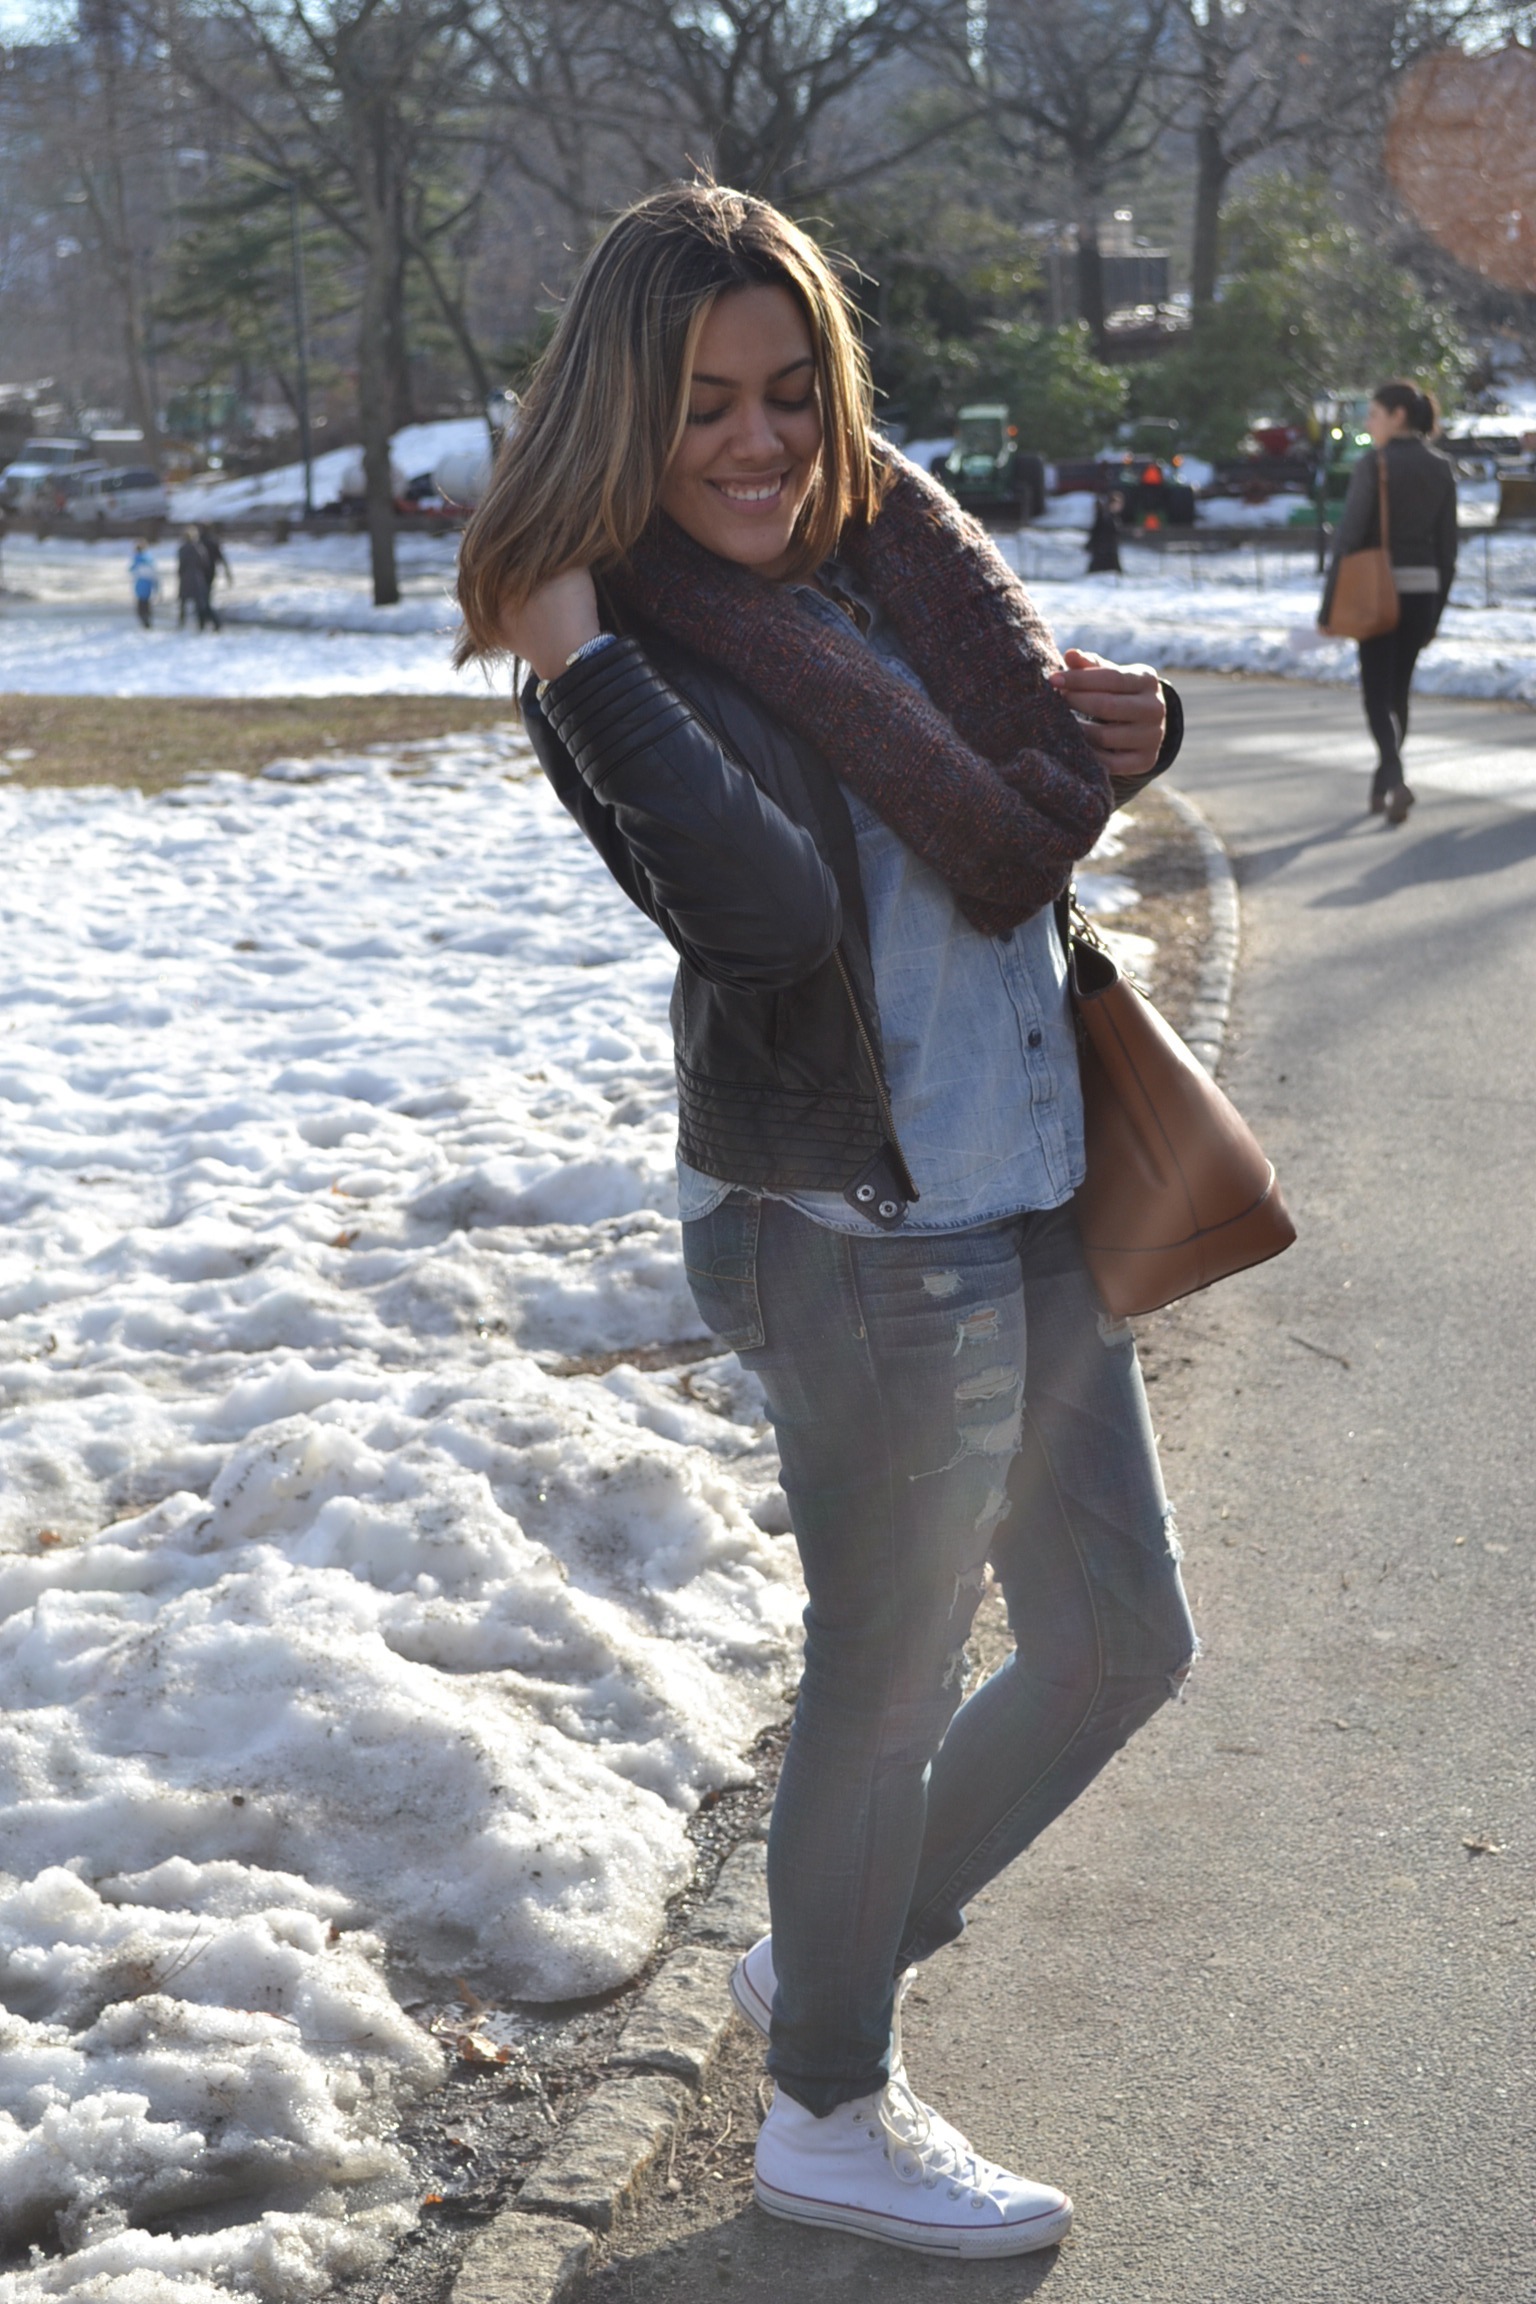 Wearing: The Limited Leather Jacket, AE Jeans + Shirt, Converse Sneakers, JustFab Bag, Gap Scarf